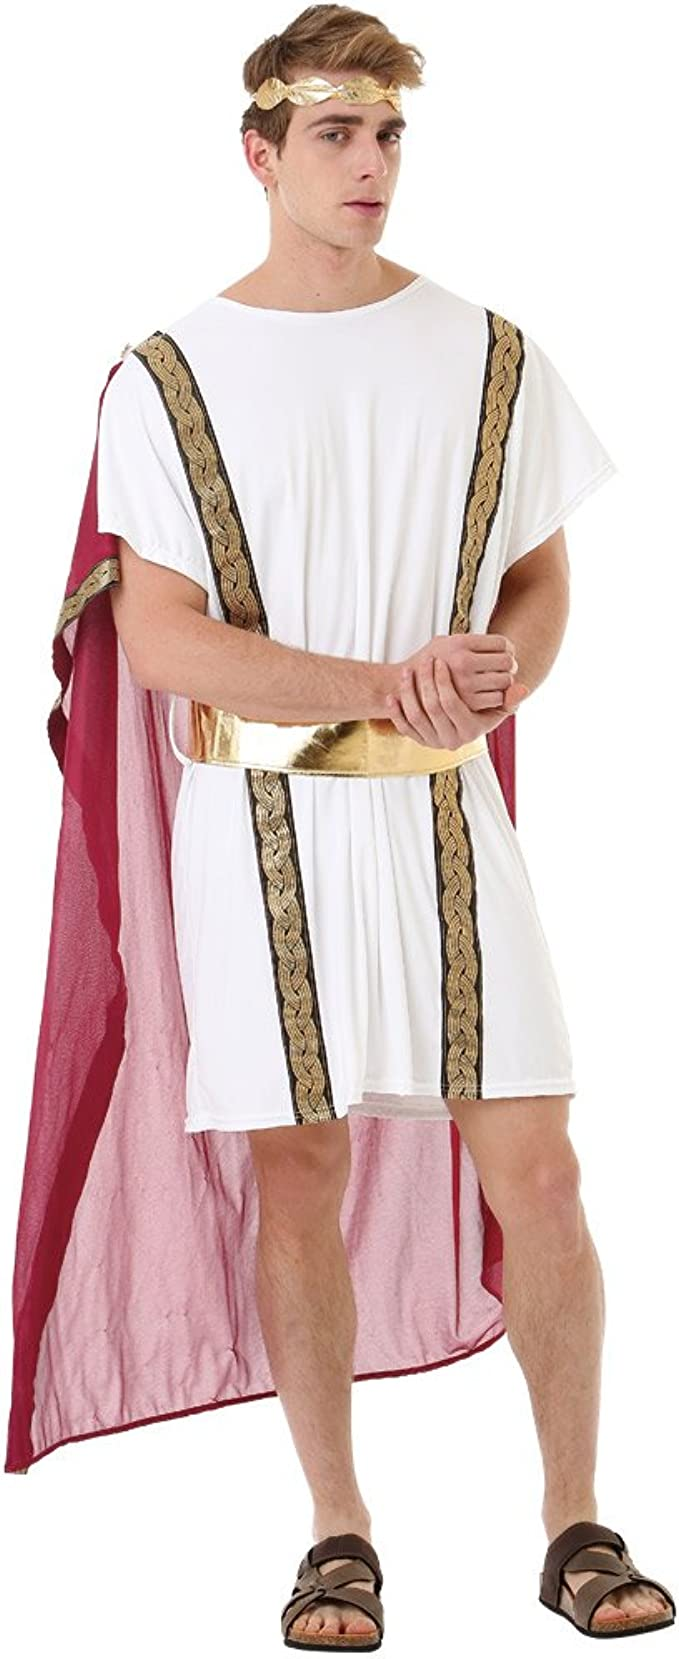 Amazon Com Roman Emperor Men S Halloween Costume Julius Caesar Greek Toga King Robe Clothing Julius novachrono 「ユリウス・ノヴァクロノ yuriusu novakurono」 is the 28th magic emperor of the clover kingdom's magic knights. halloween costume julius caesar